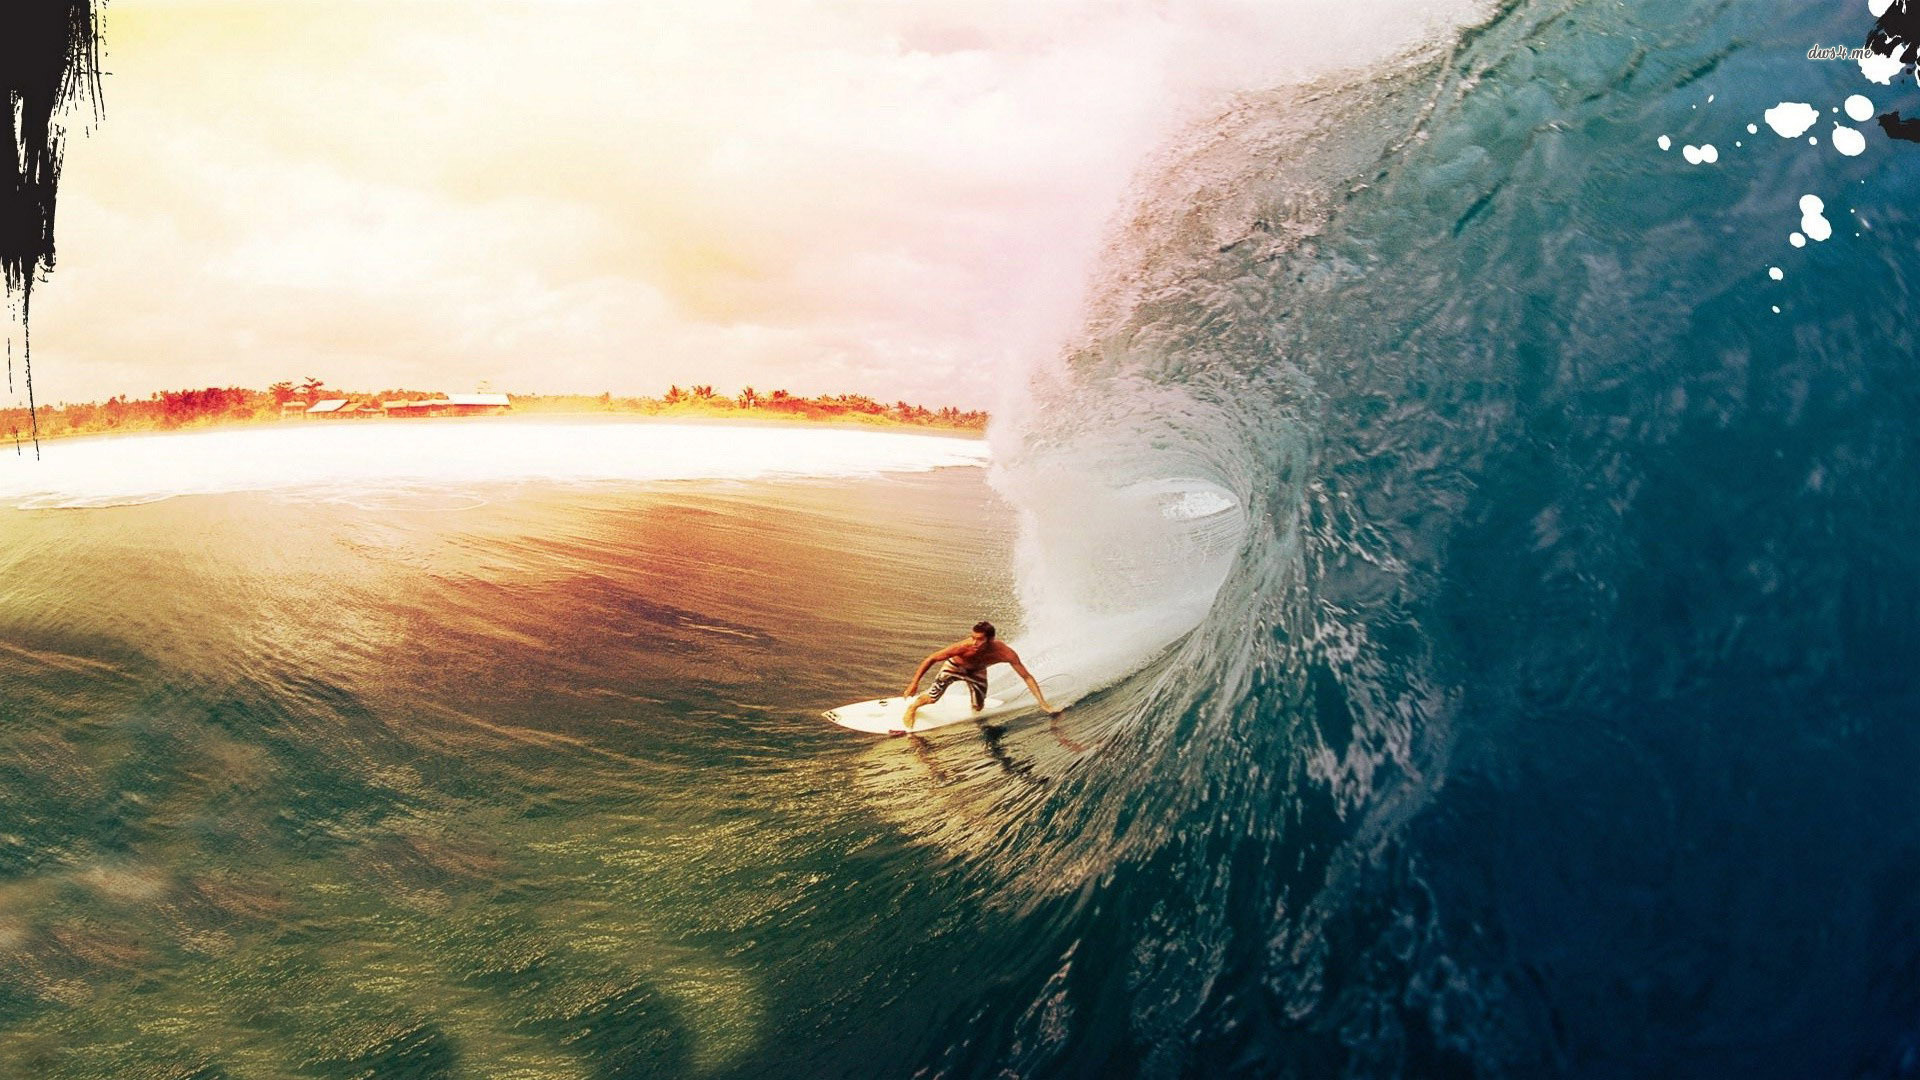 RT 49 Surf Wallpaper Pictures of Surf HQFX 36 Stunning Wallpapers 1920x1080